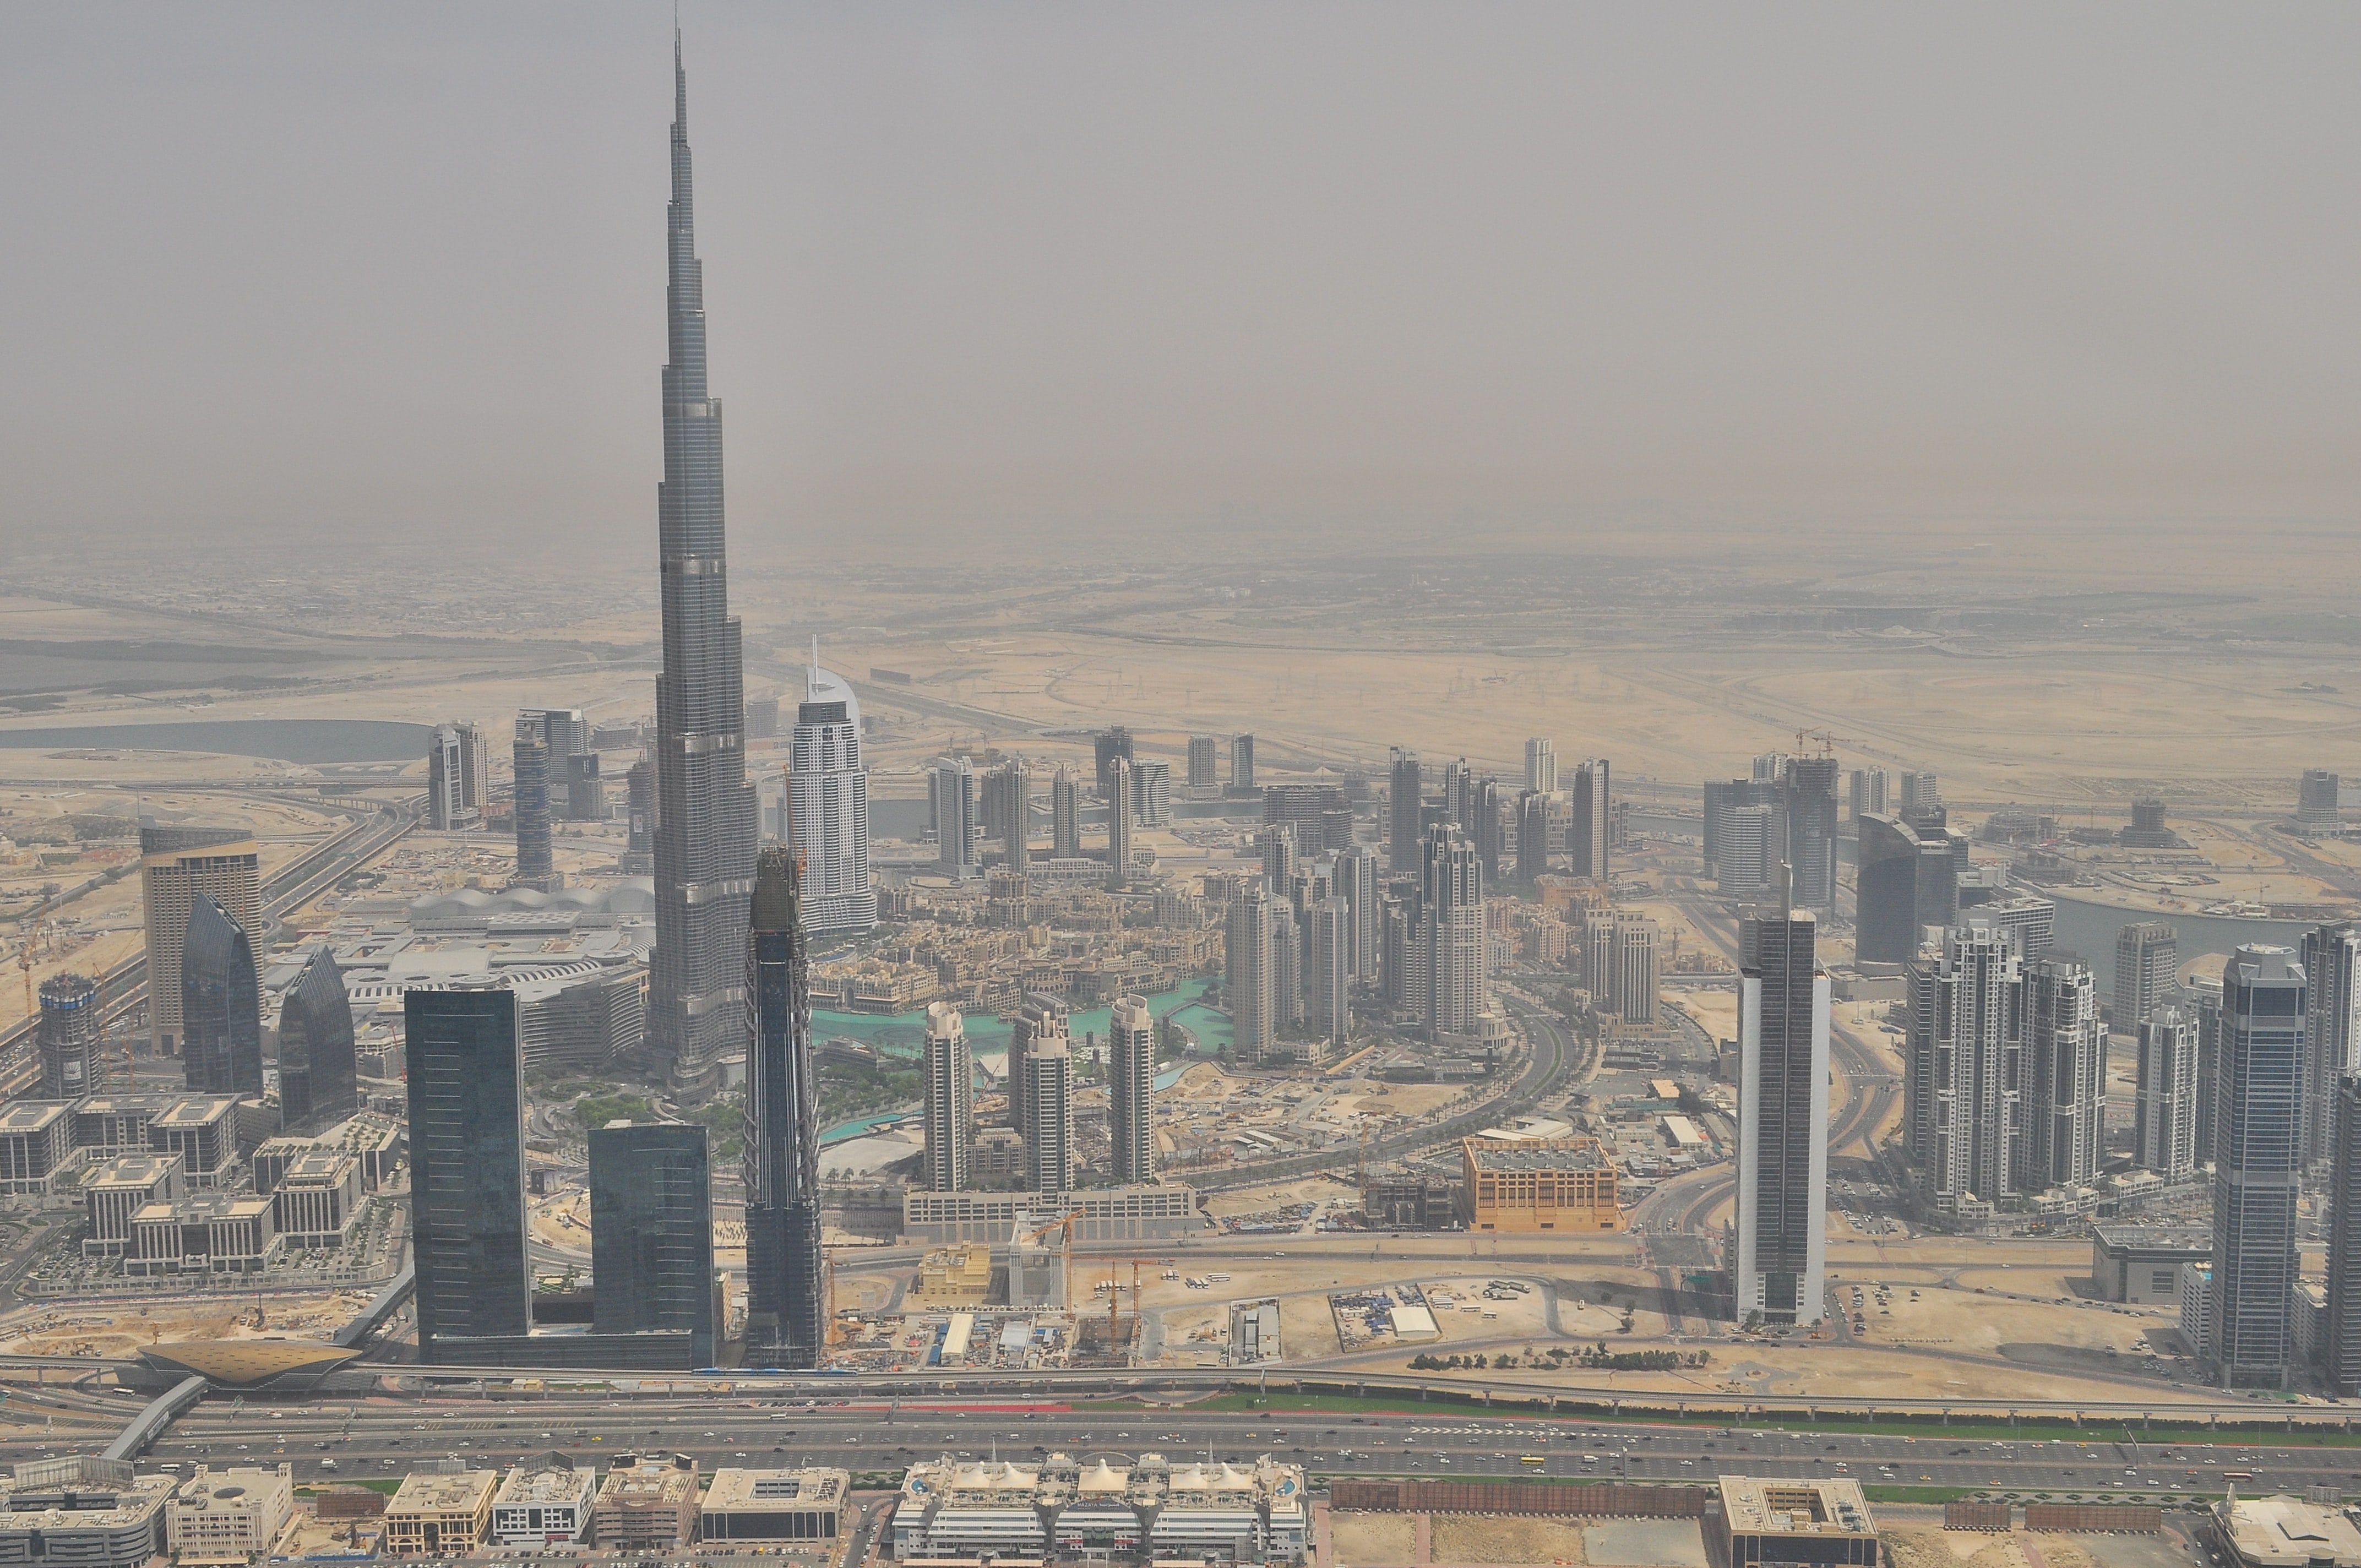 The enormous Burj Khalifa skyscraper in the skyline of Dubai